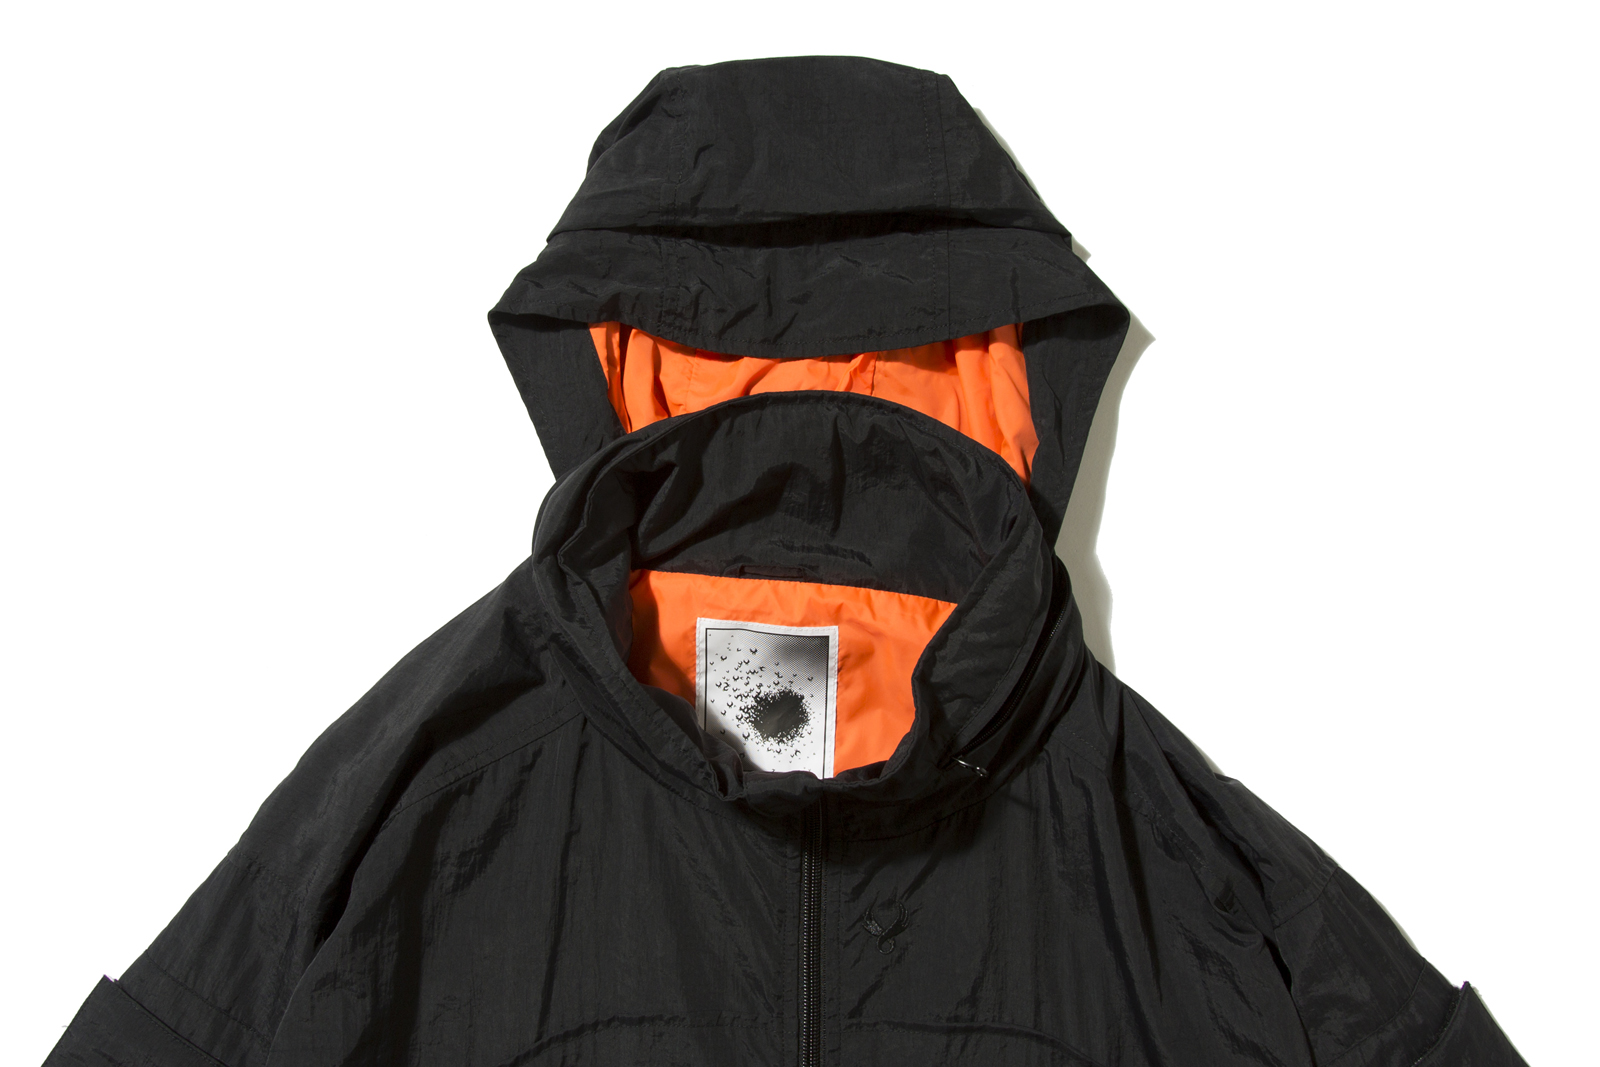 r-x-level5-jacket-black_p1